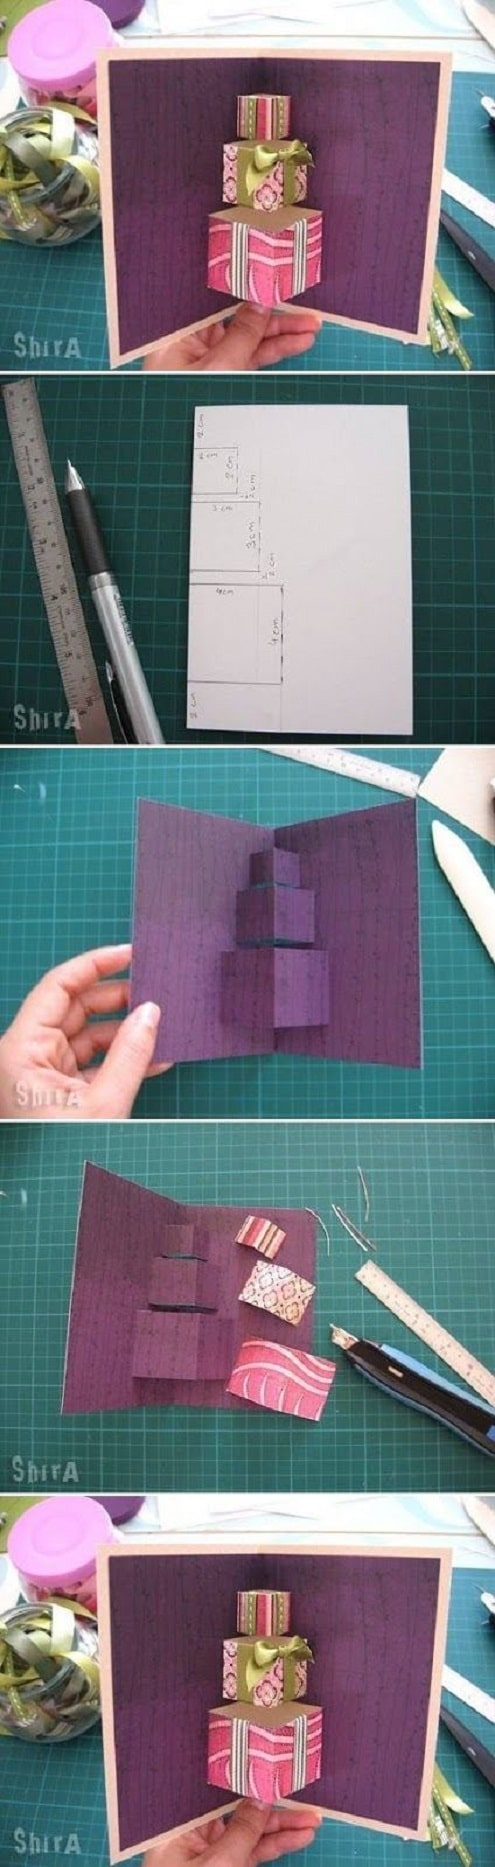 Ideas Of Making Birthday Cards 32 Handmade Birthday Card Ideas And Images